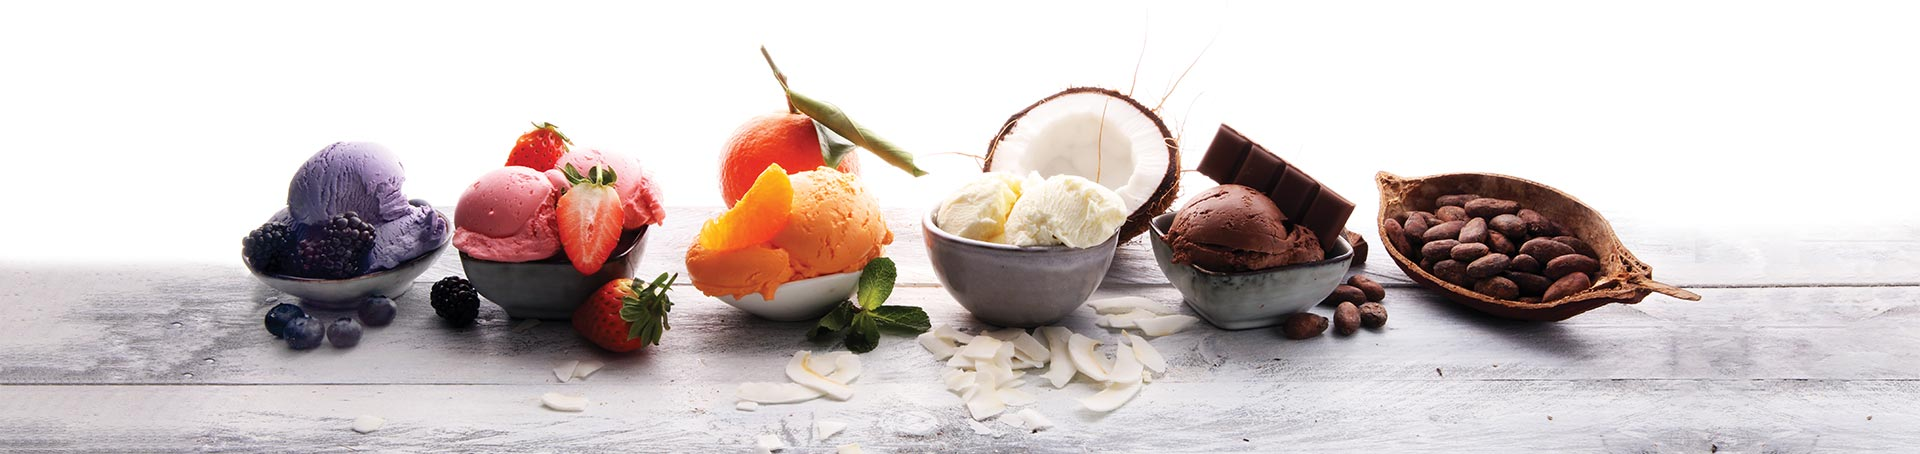 Authentic Italian Gelato served with fruit in bowls